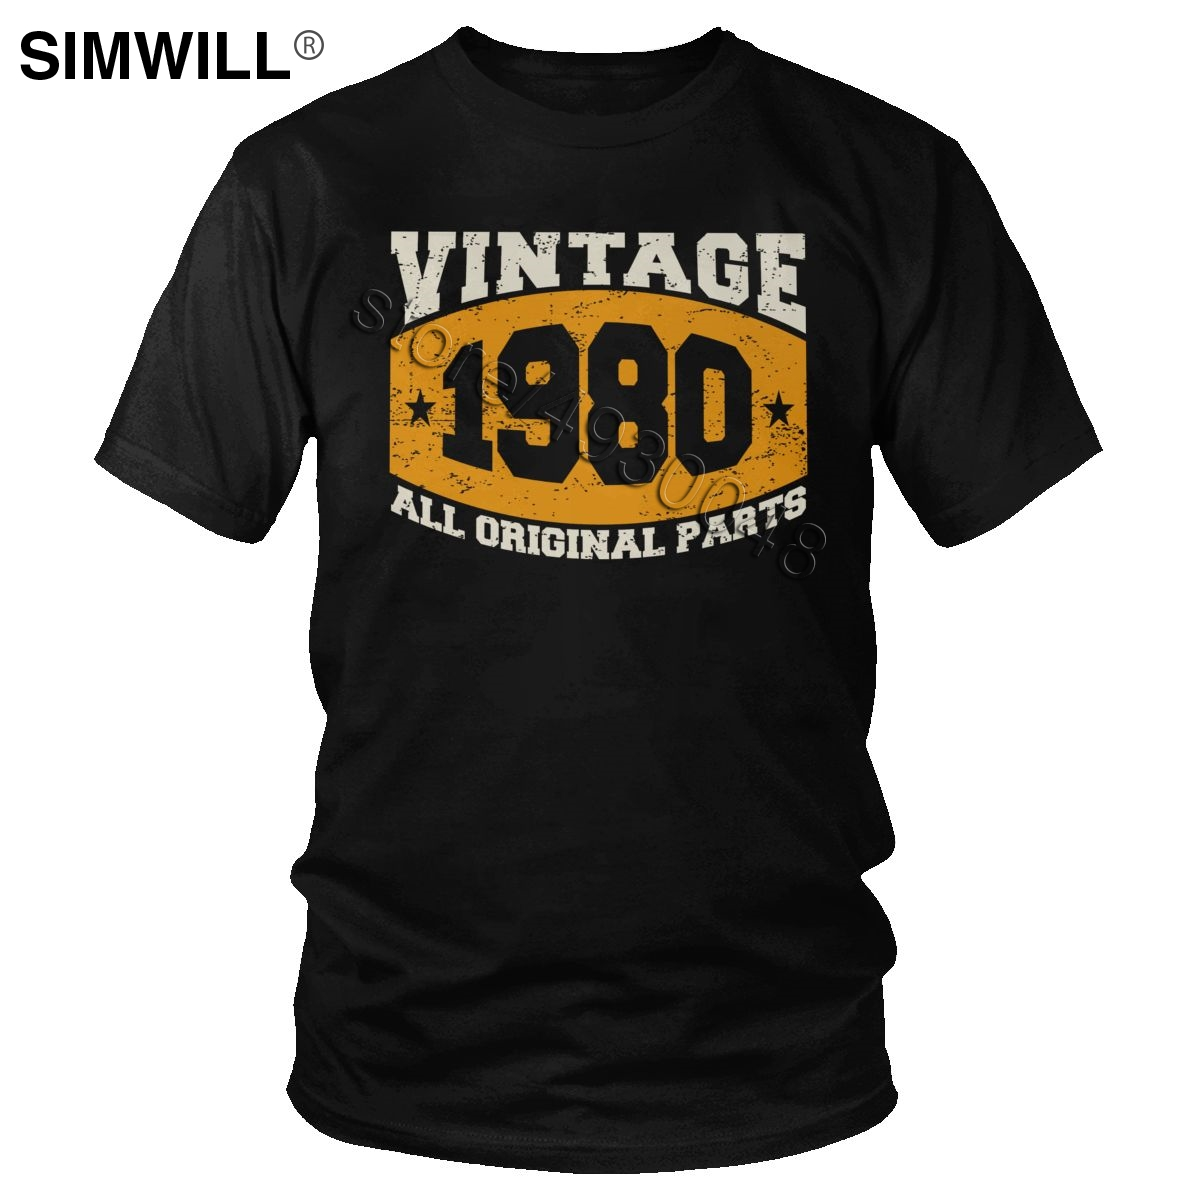 Vintage Since 1980 Birthday Celebration Gift T Shirt Men Short Sleeve Cotton Tee All Original Parts 40 Years Old Tshirt Tops